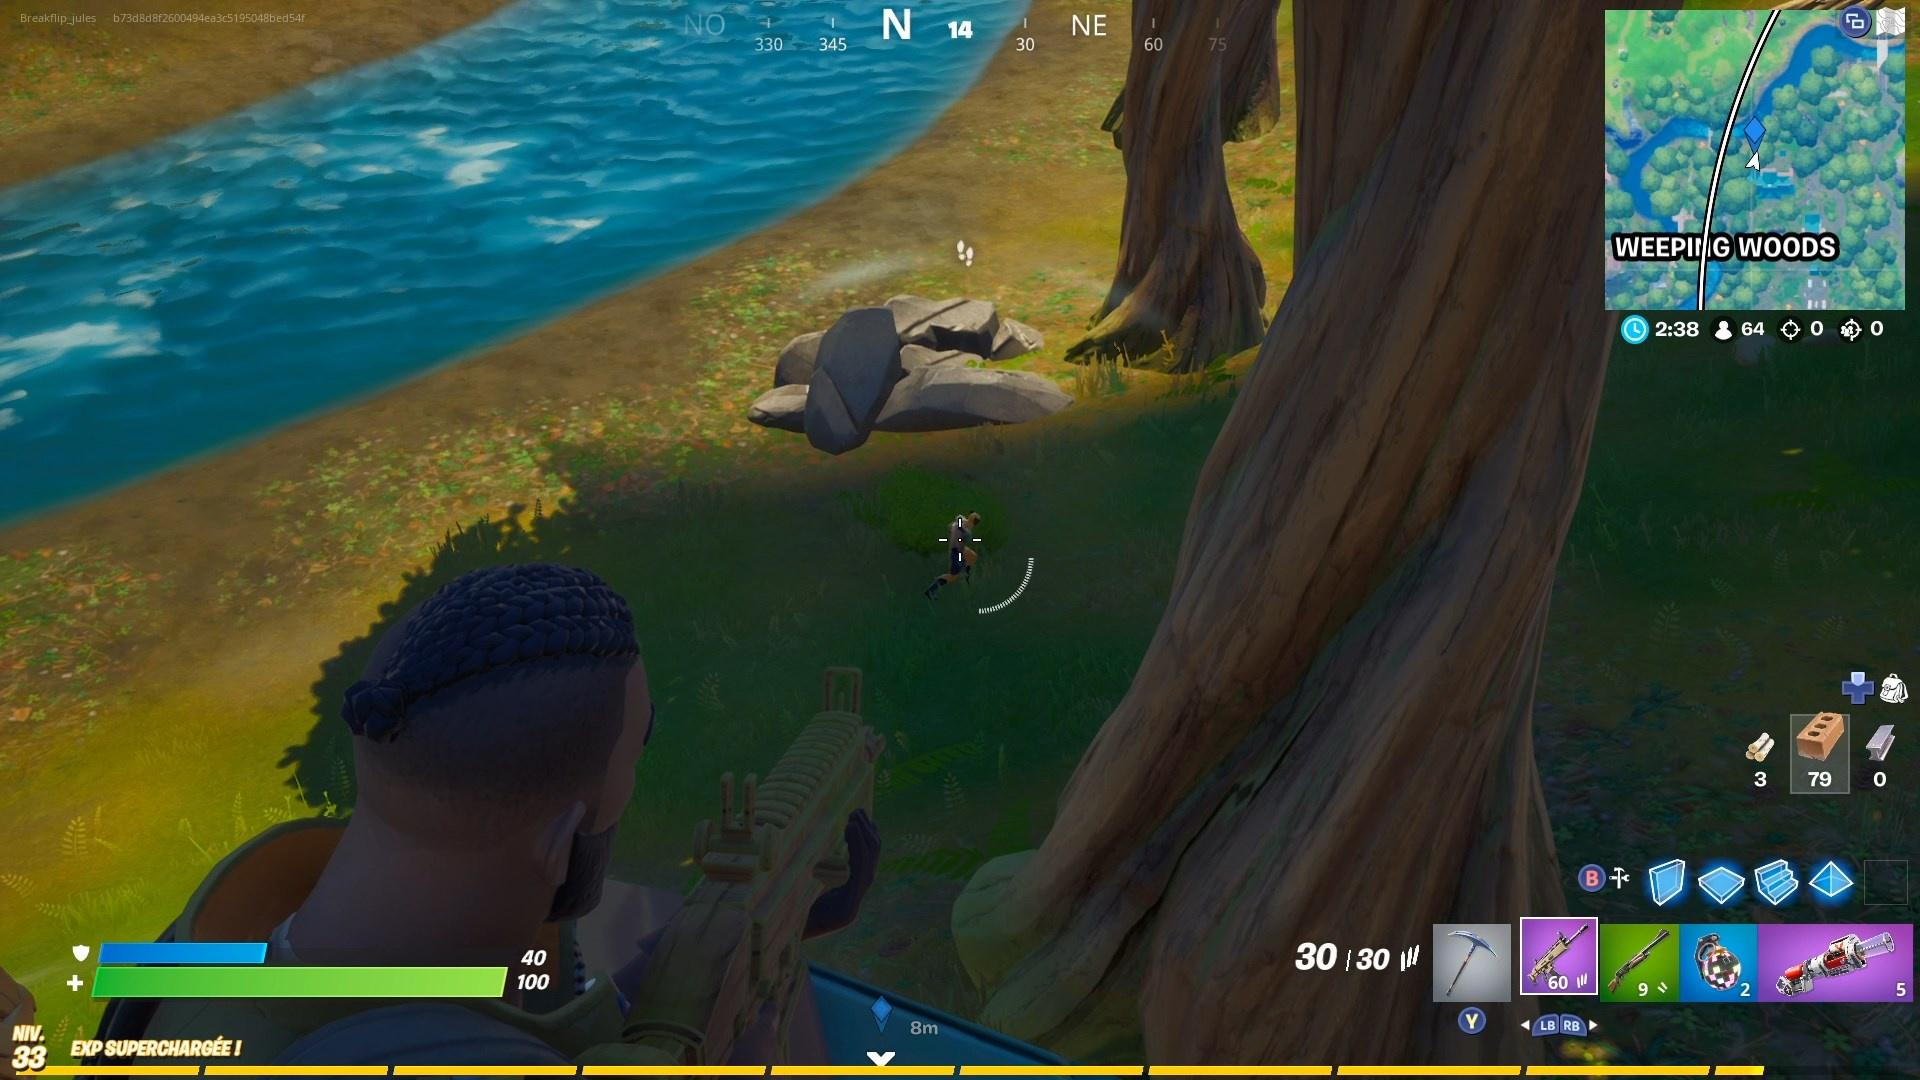 Fortnite Defeat Wolverine Challenge To Unlock The Skin Breakflip News Guides And Tips En24 World